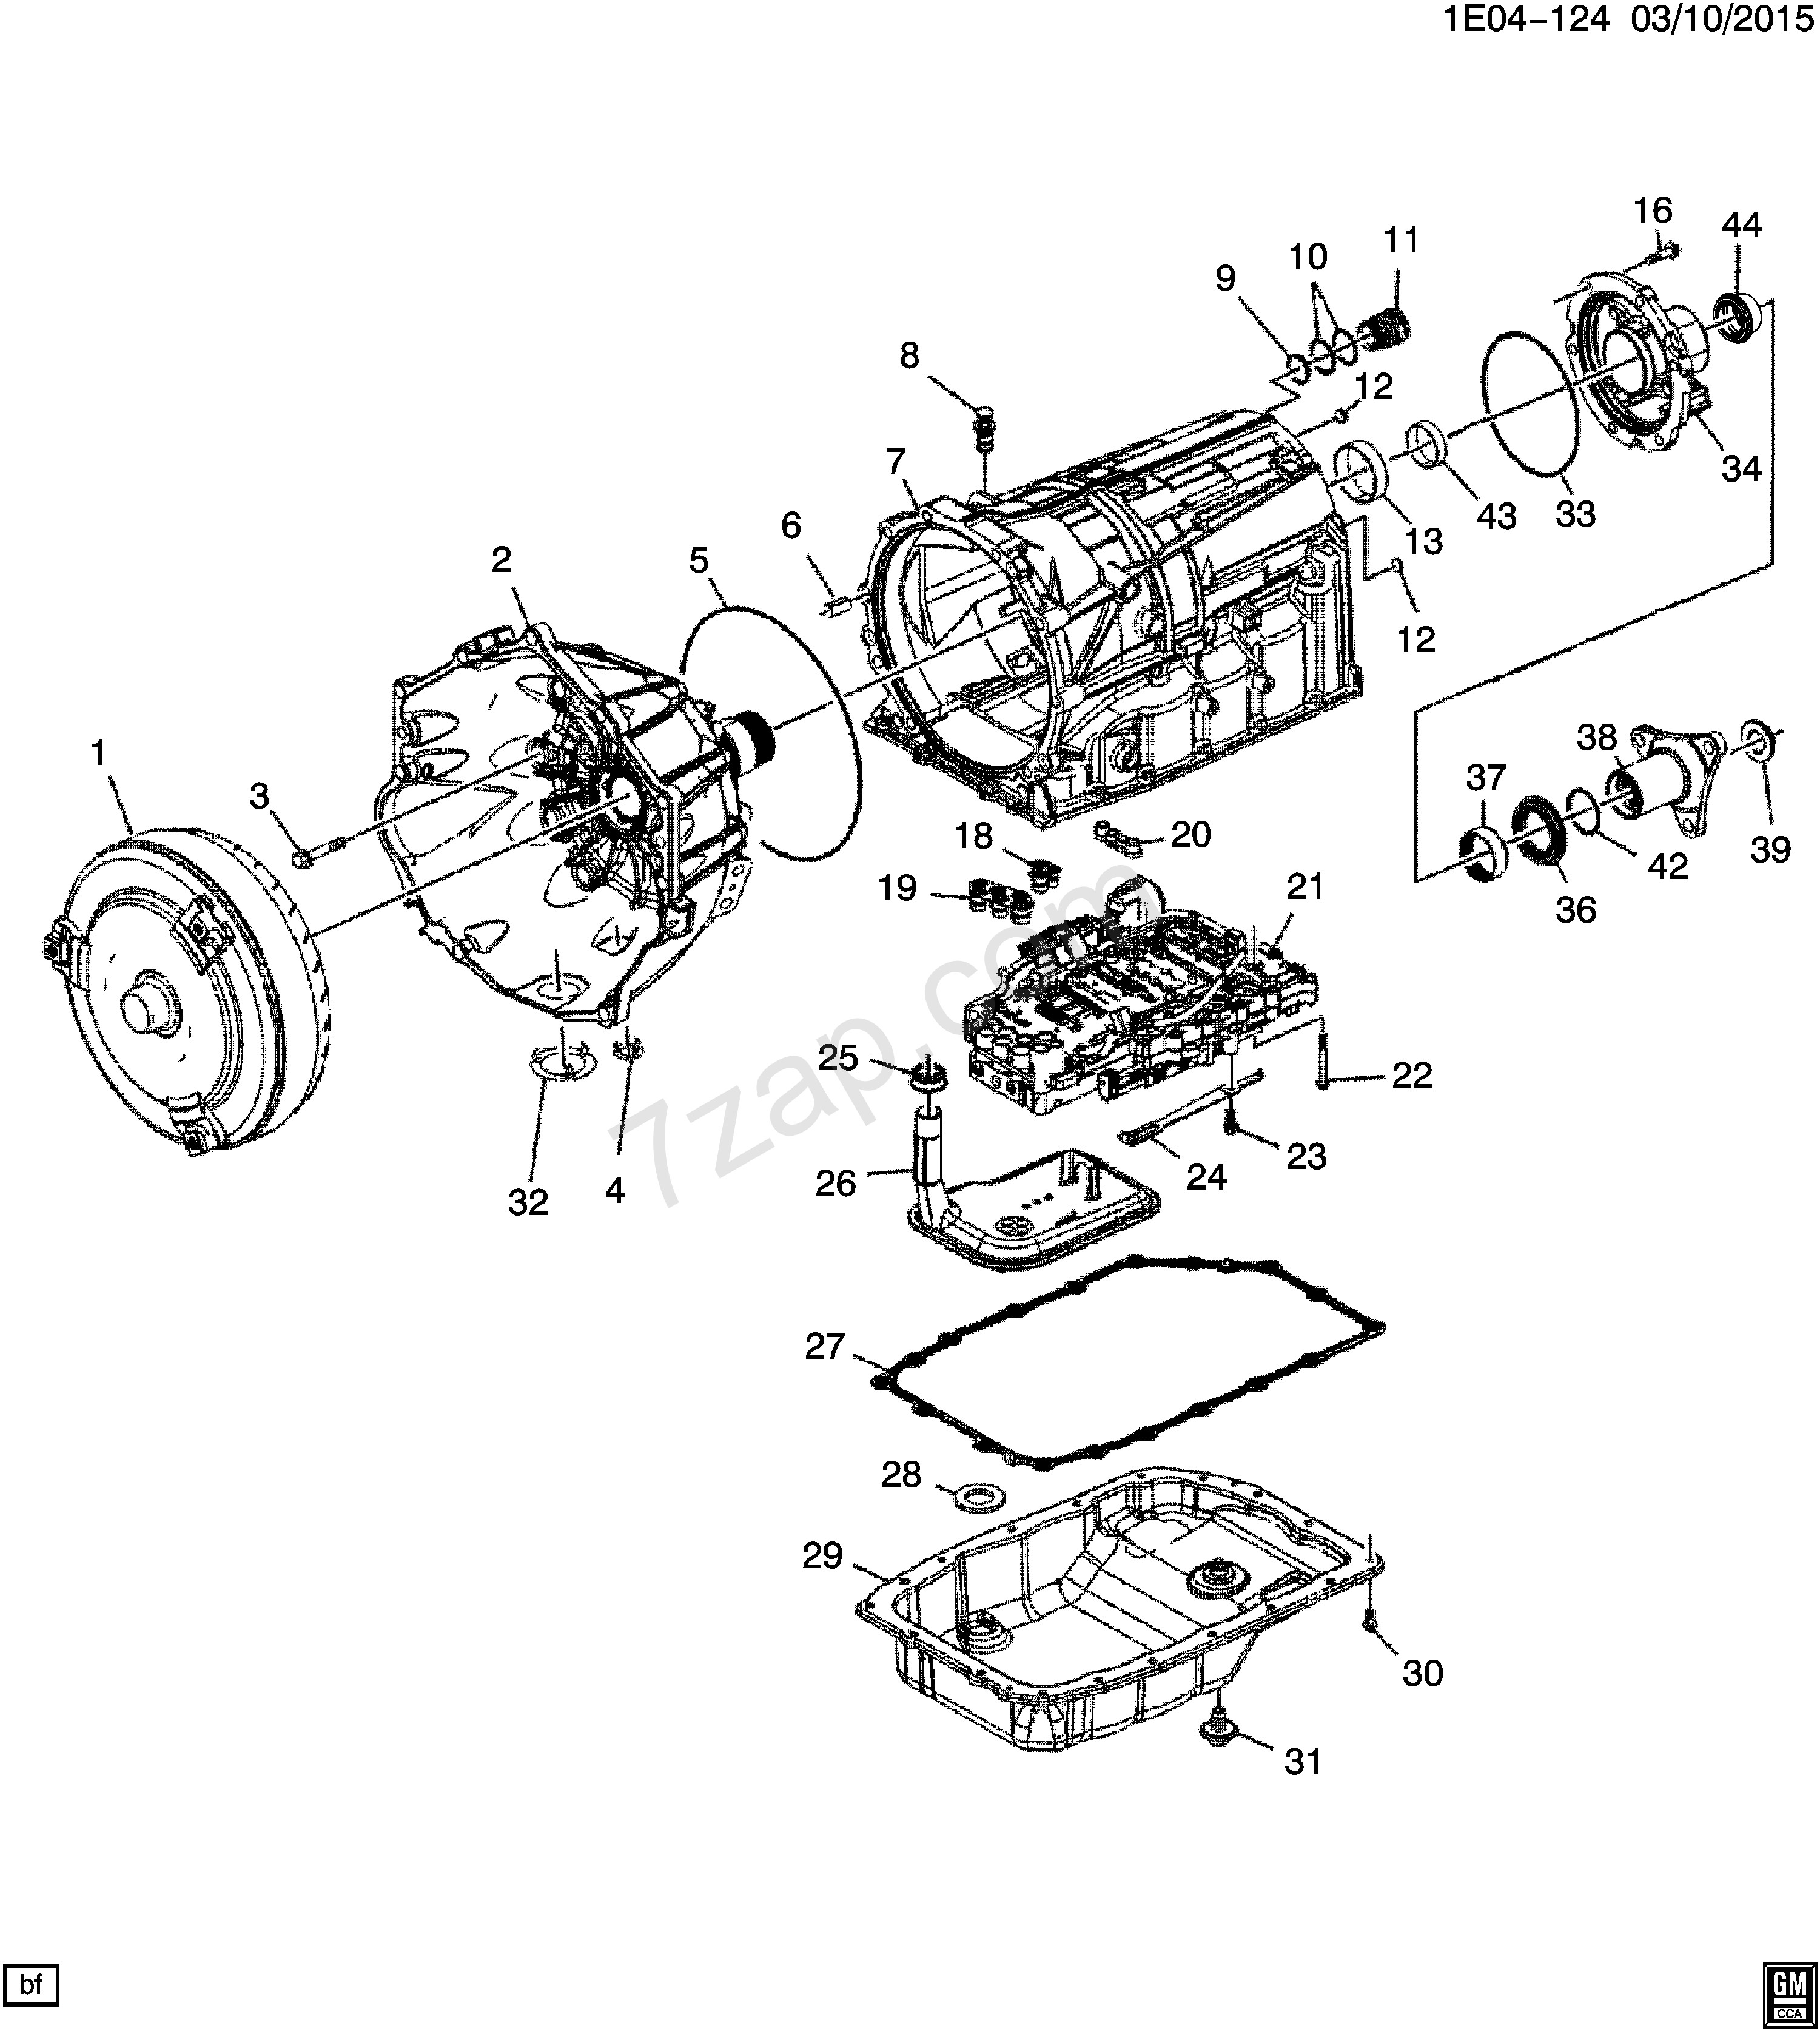 Gm Parts Diagrams with Part Numbers 2014 2017 Ek19 Automatic Transmission Myc 6l80 Case & Related Of Gm Parts Diagrams with Part Numbers